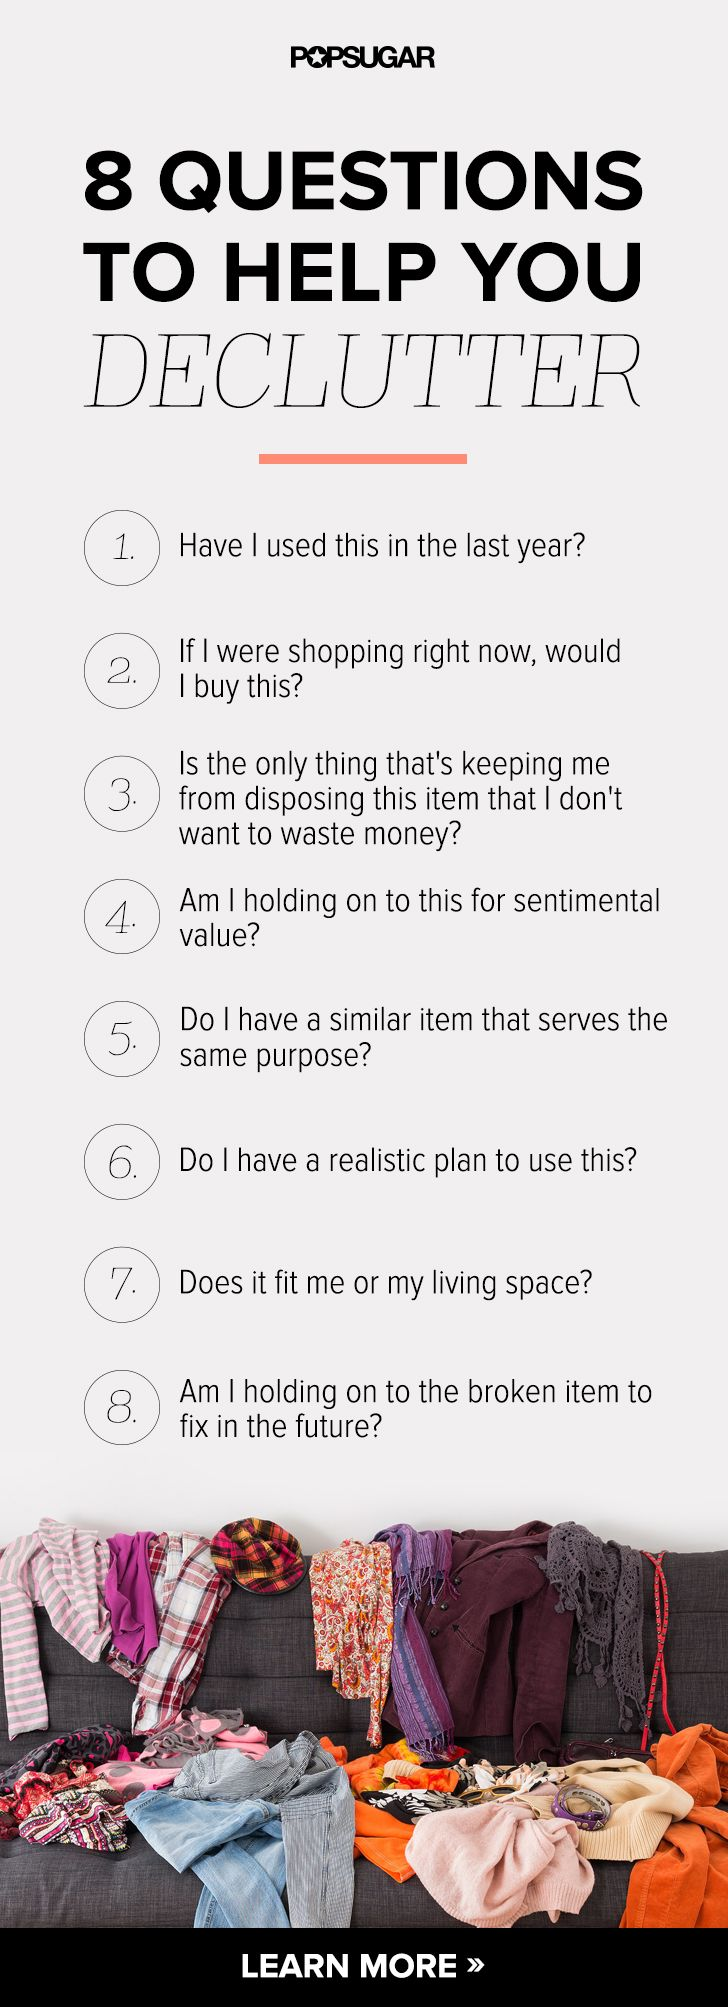 Ask yourself these questions and get rid of your items based on your answers. And when we say dispose of your clutter, we mean either sell it, donate it, recycle it, give it away to friends and family, or throw it away.